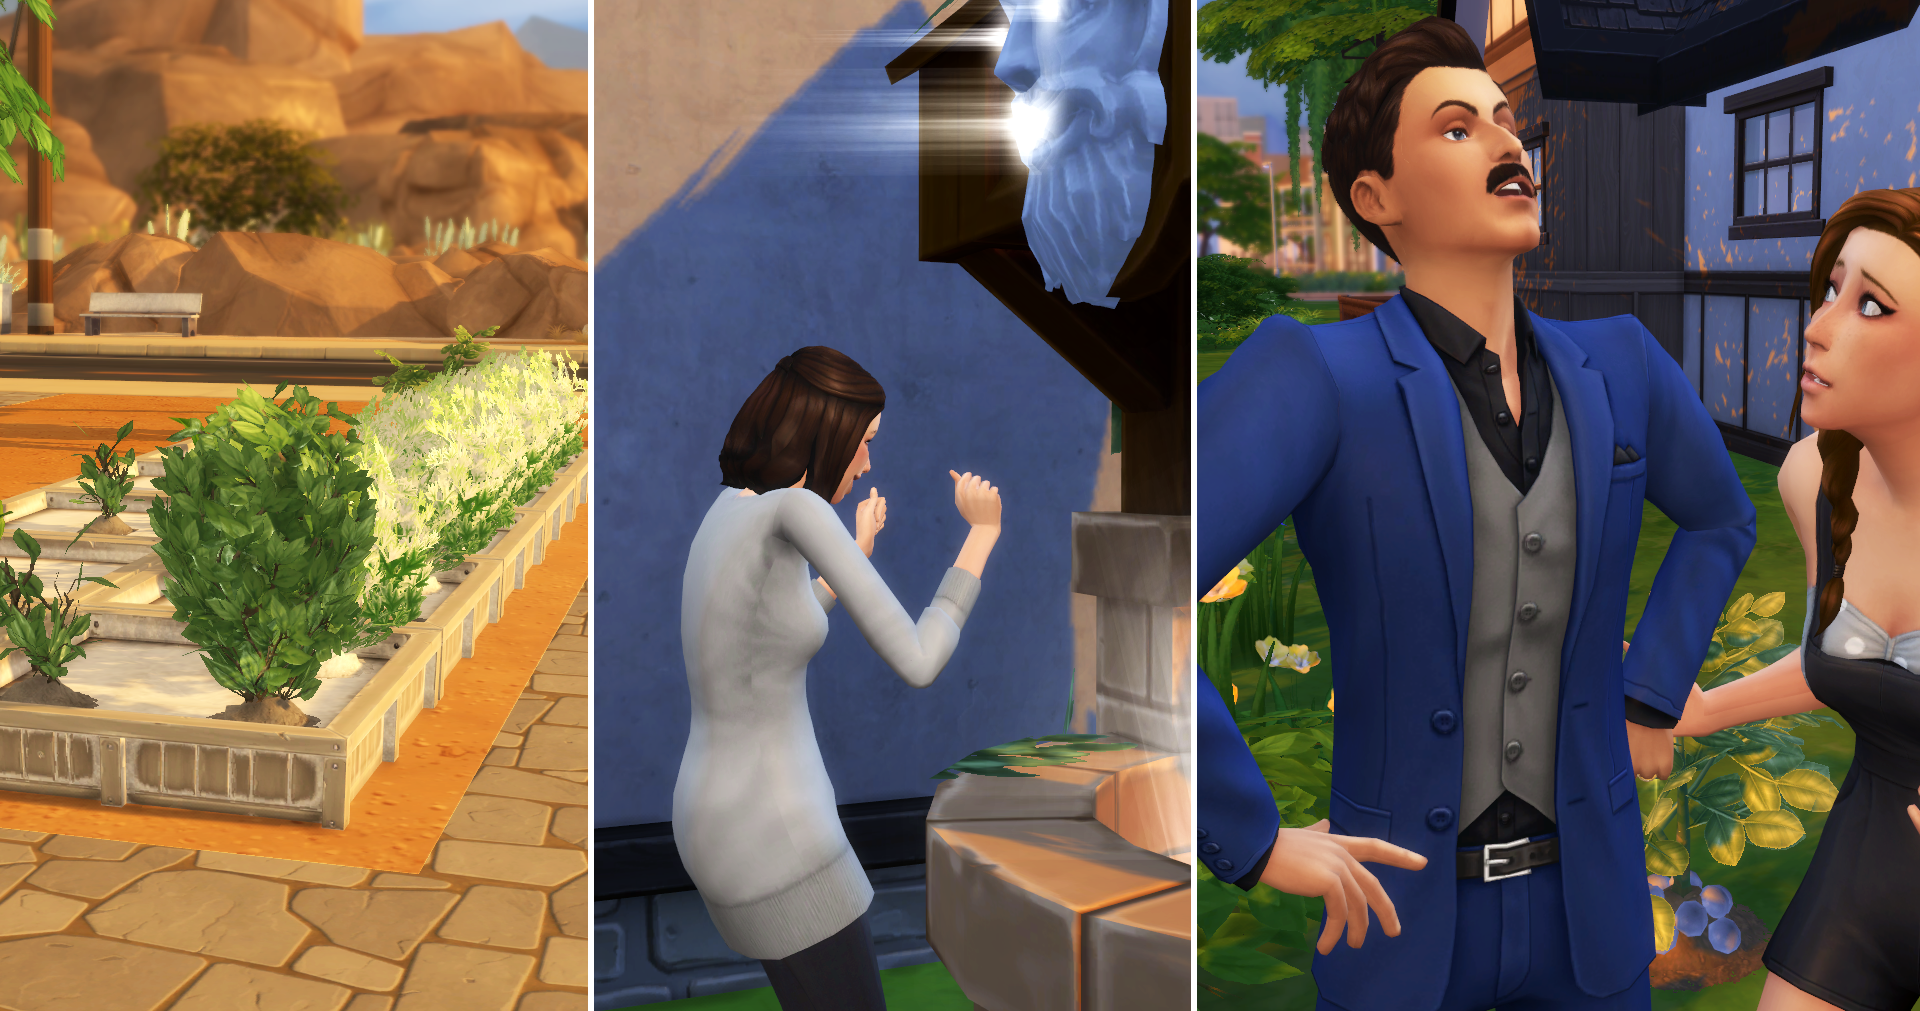 10 Ways to Make Money Without Working in The Sims 4 | SimsVIP